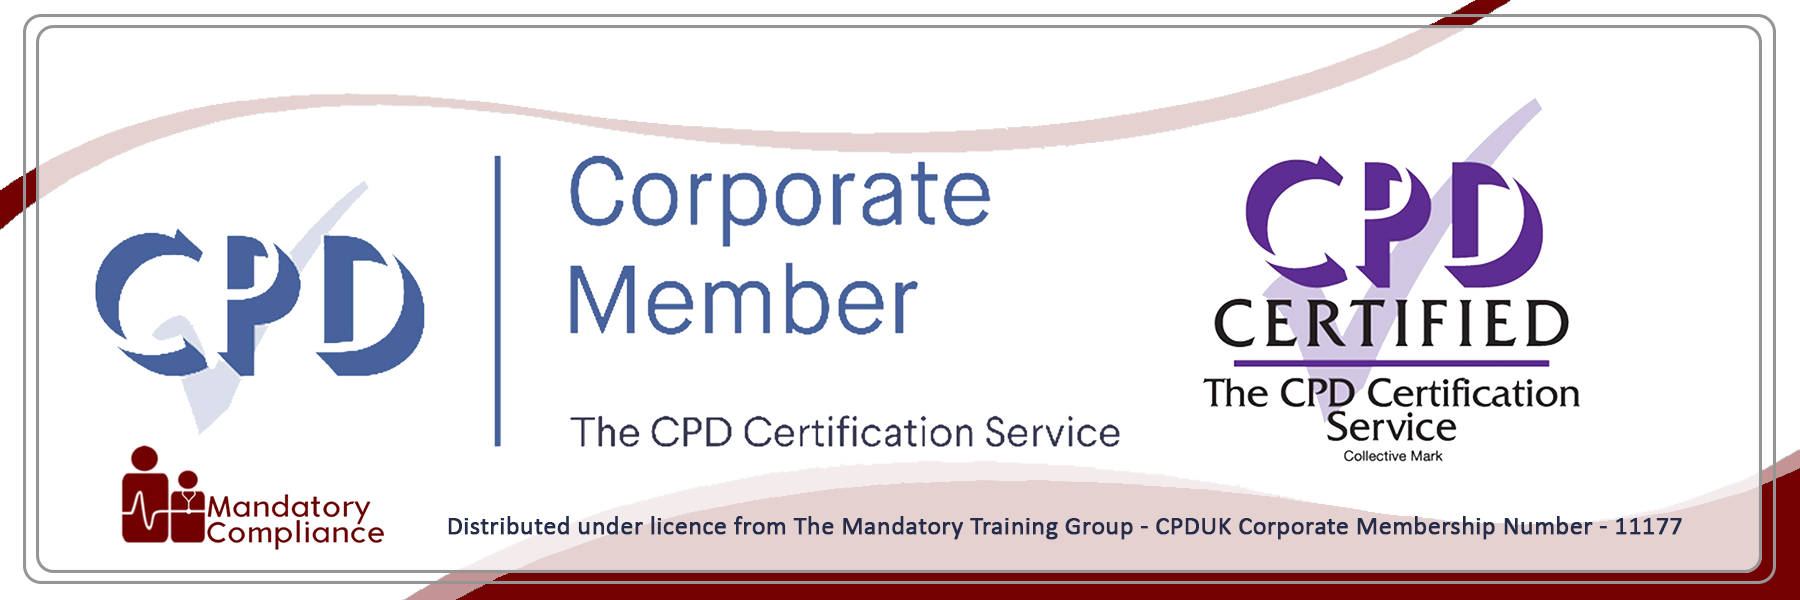 Sources of Support and Additional Resources - Online Course - The MAndatory Compliance UK -